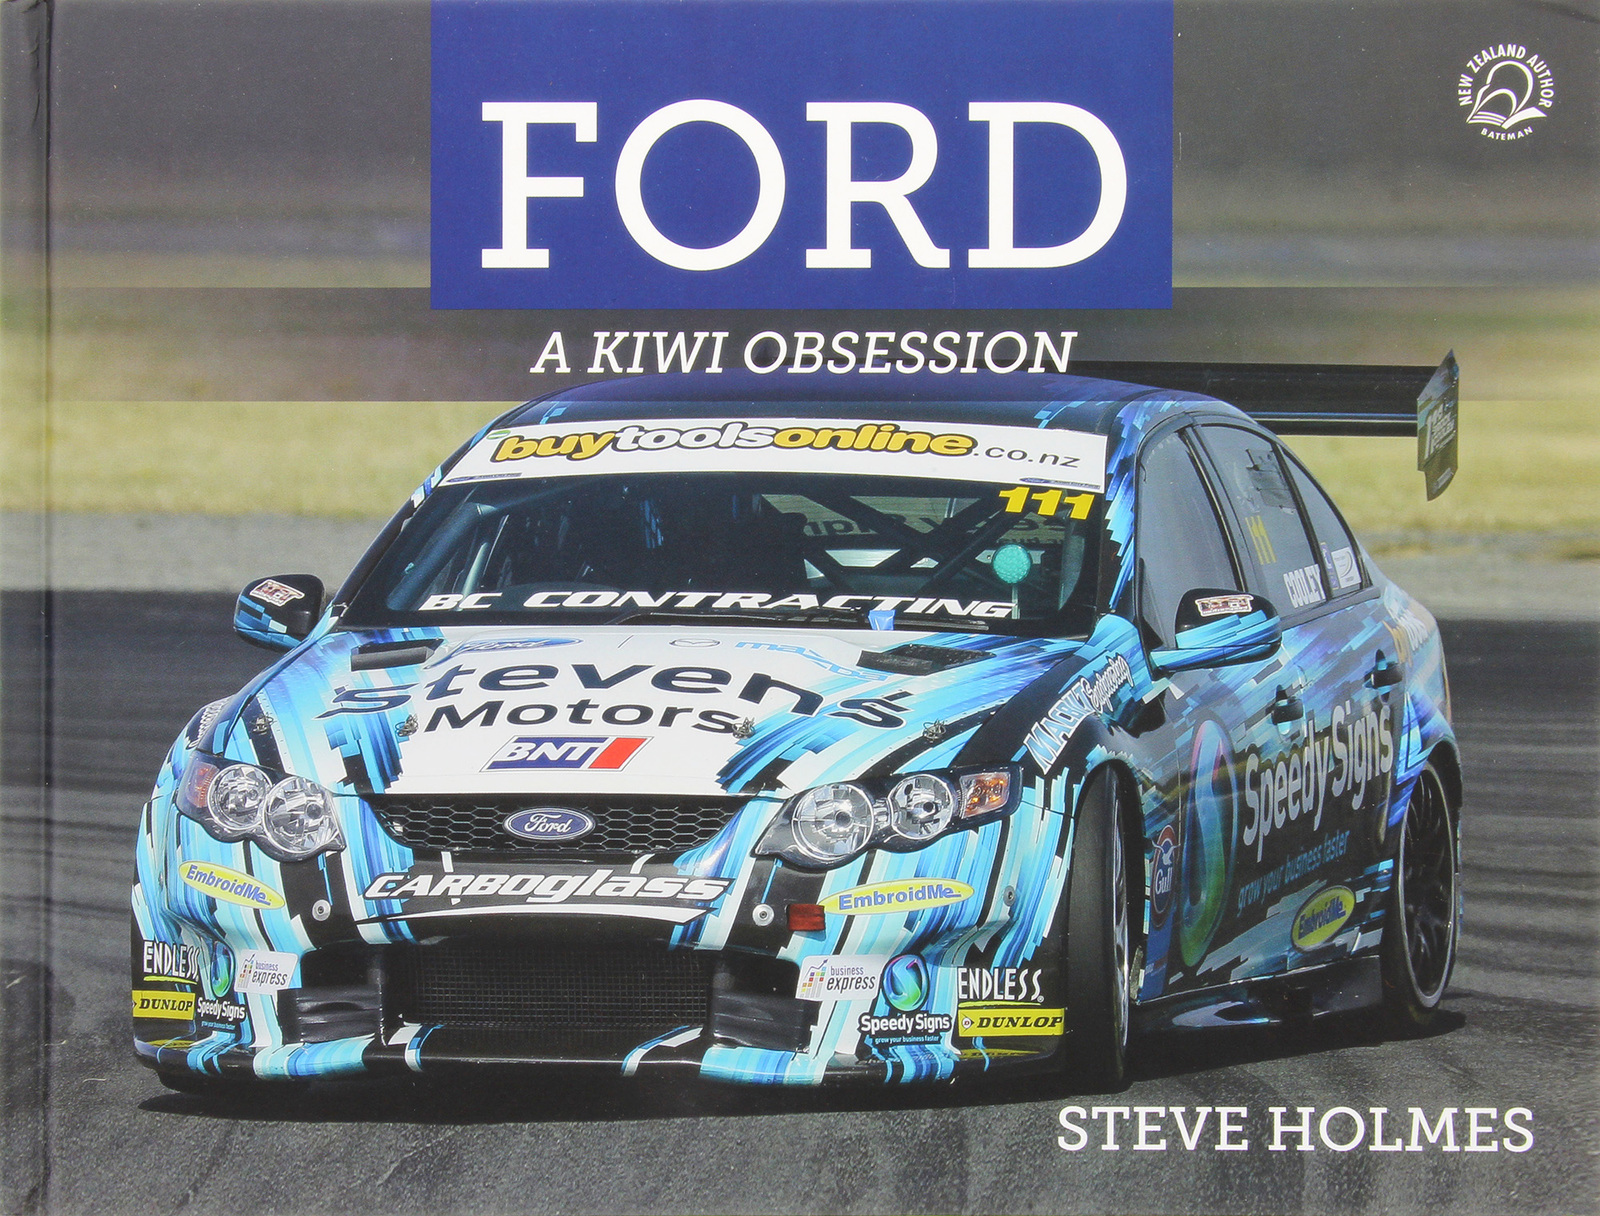 Ford A Kiwi Obsession by Steve Holmes image